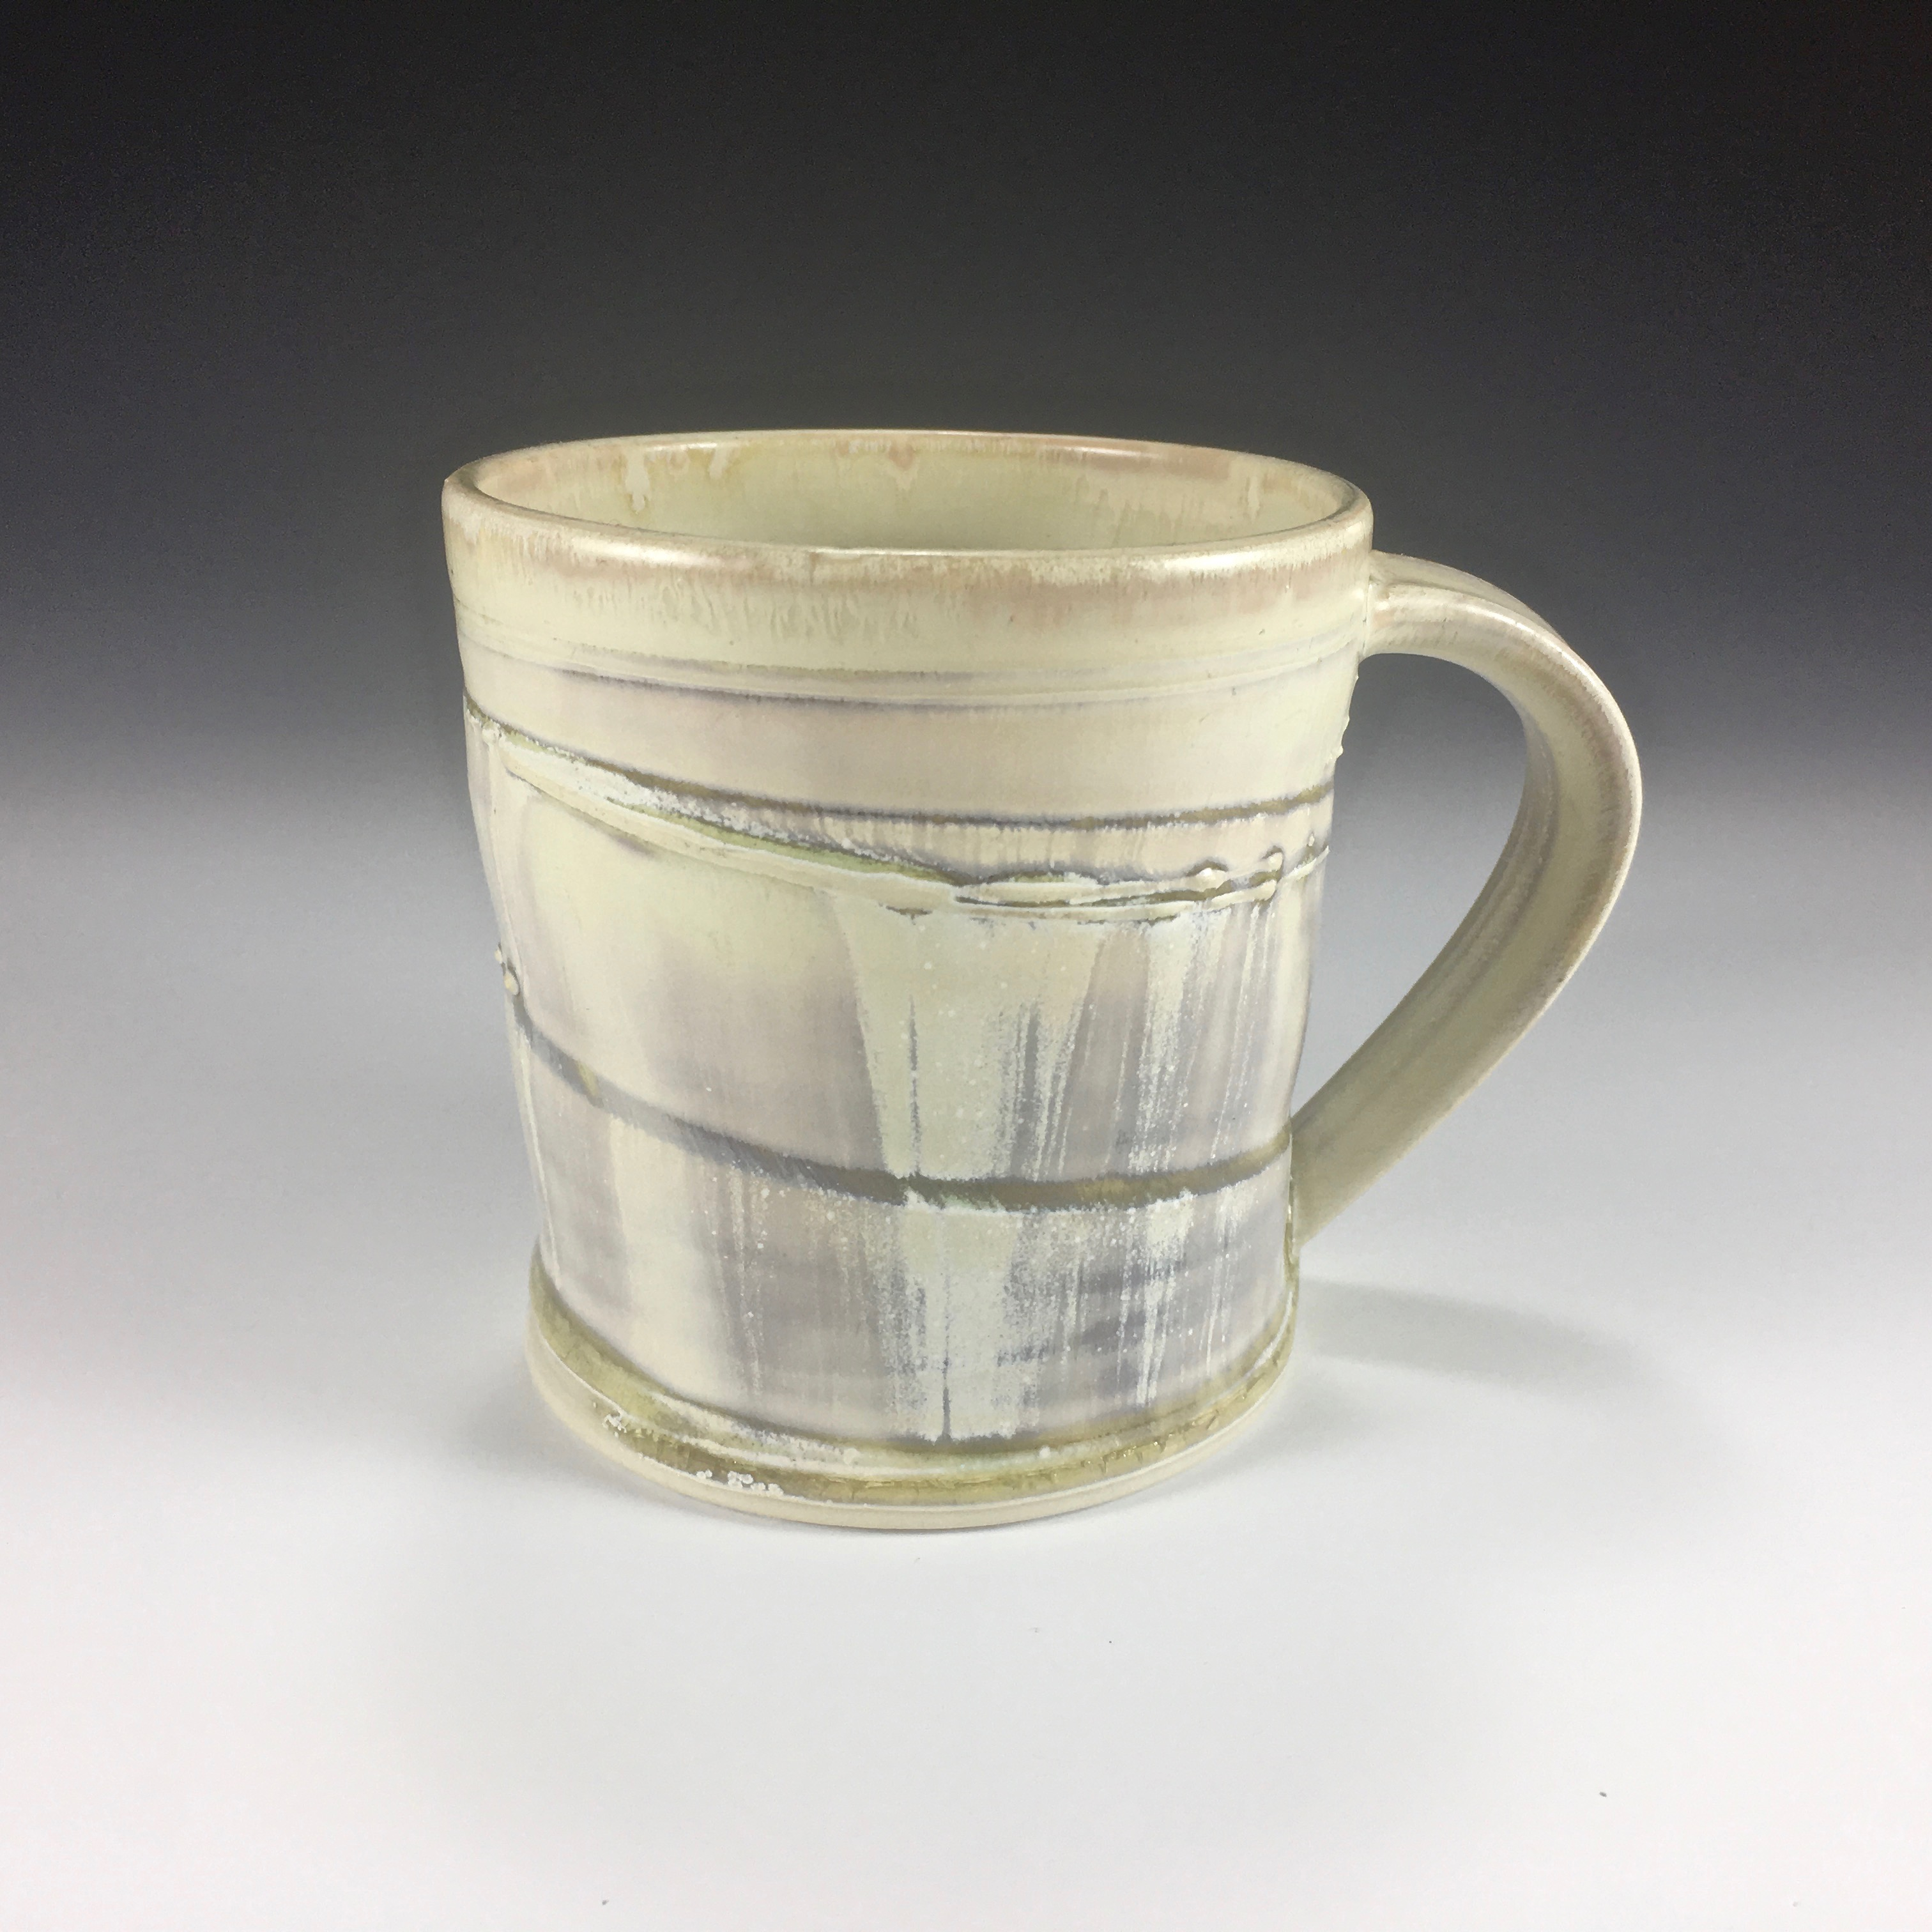 Glassy-Ice Green Mug